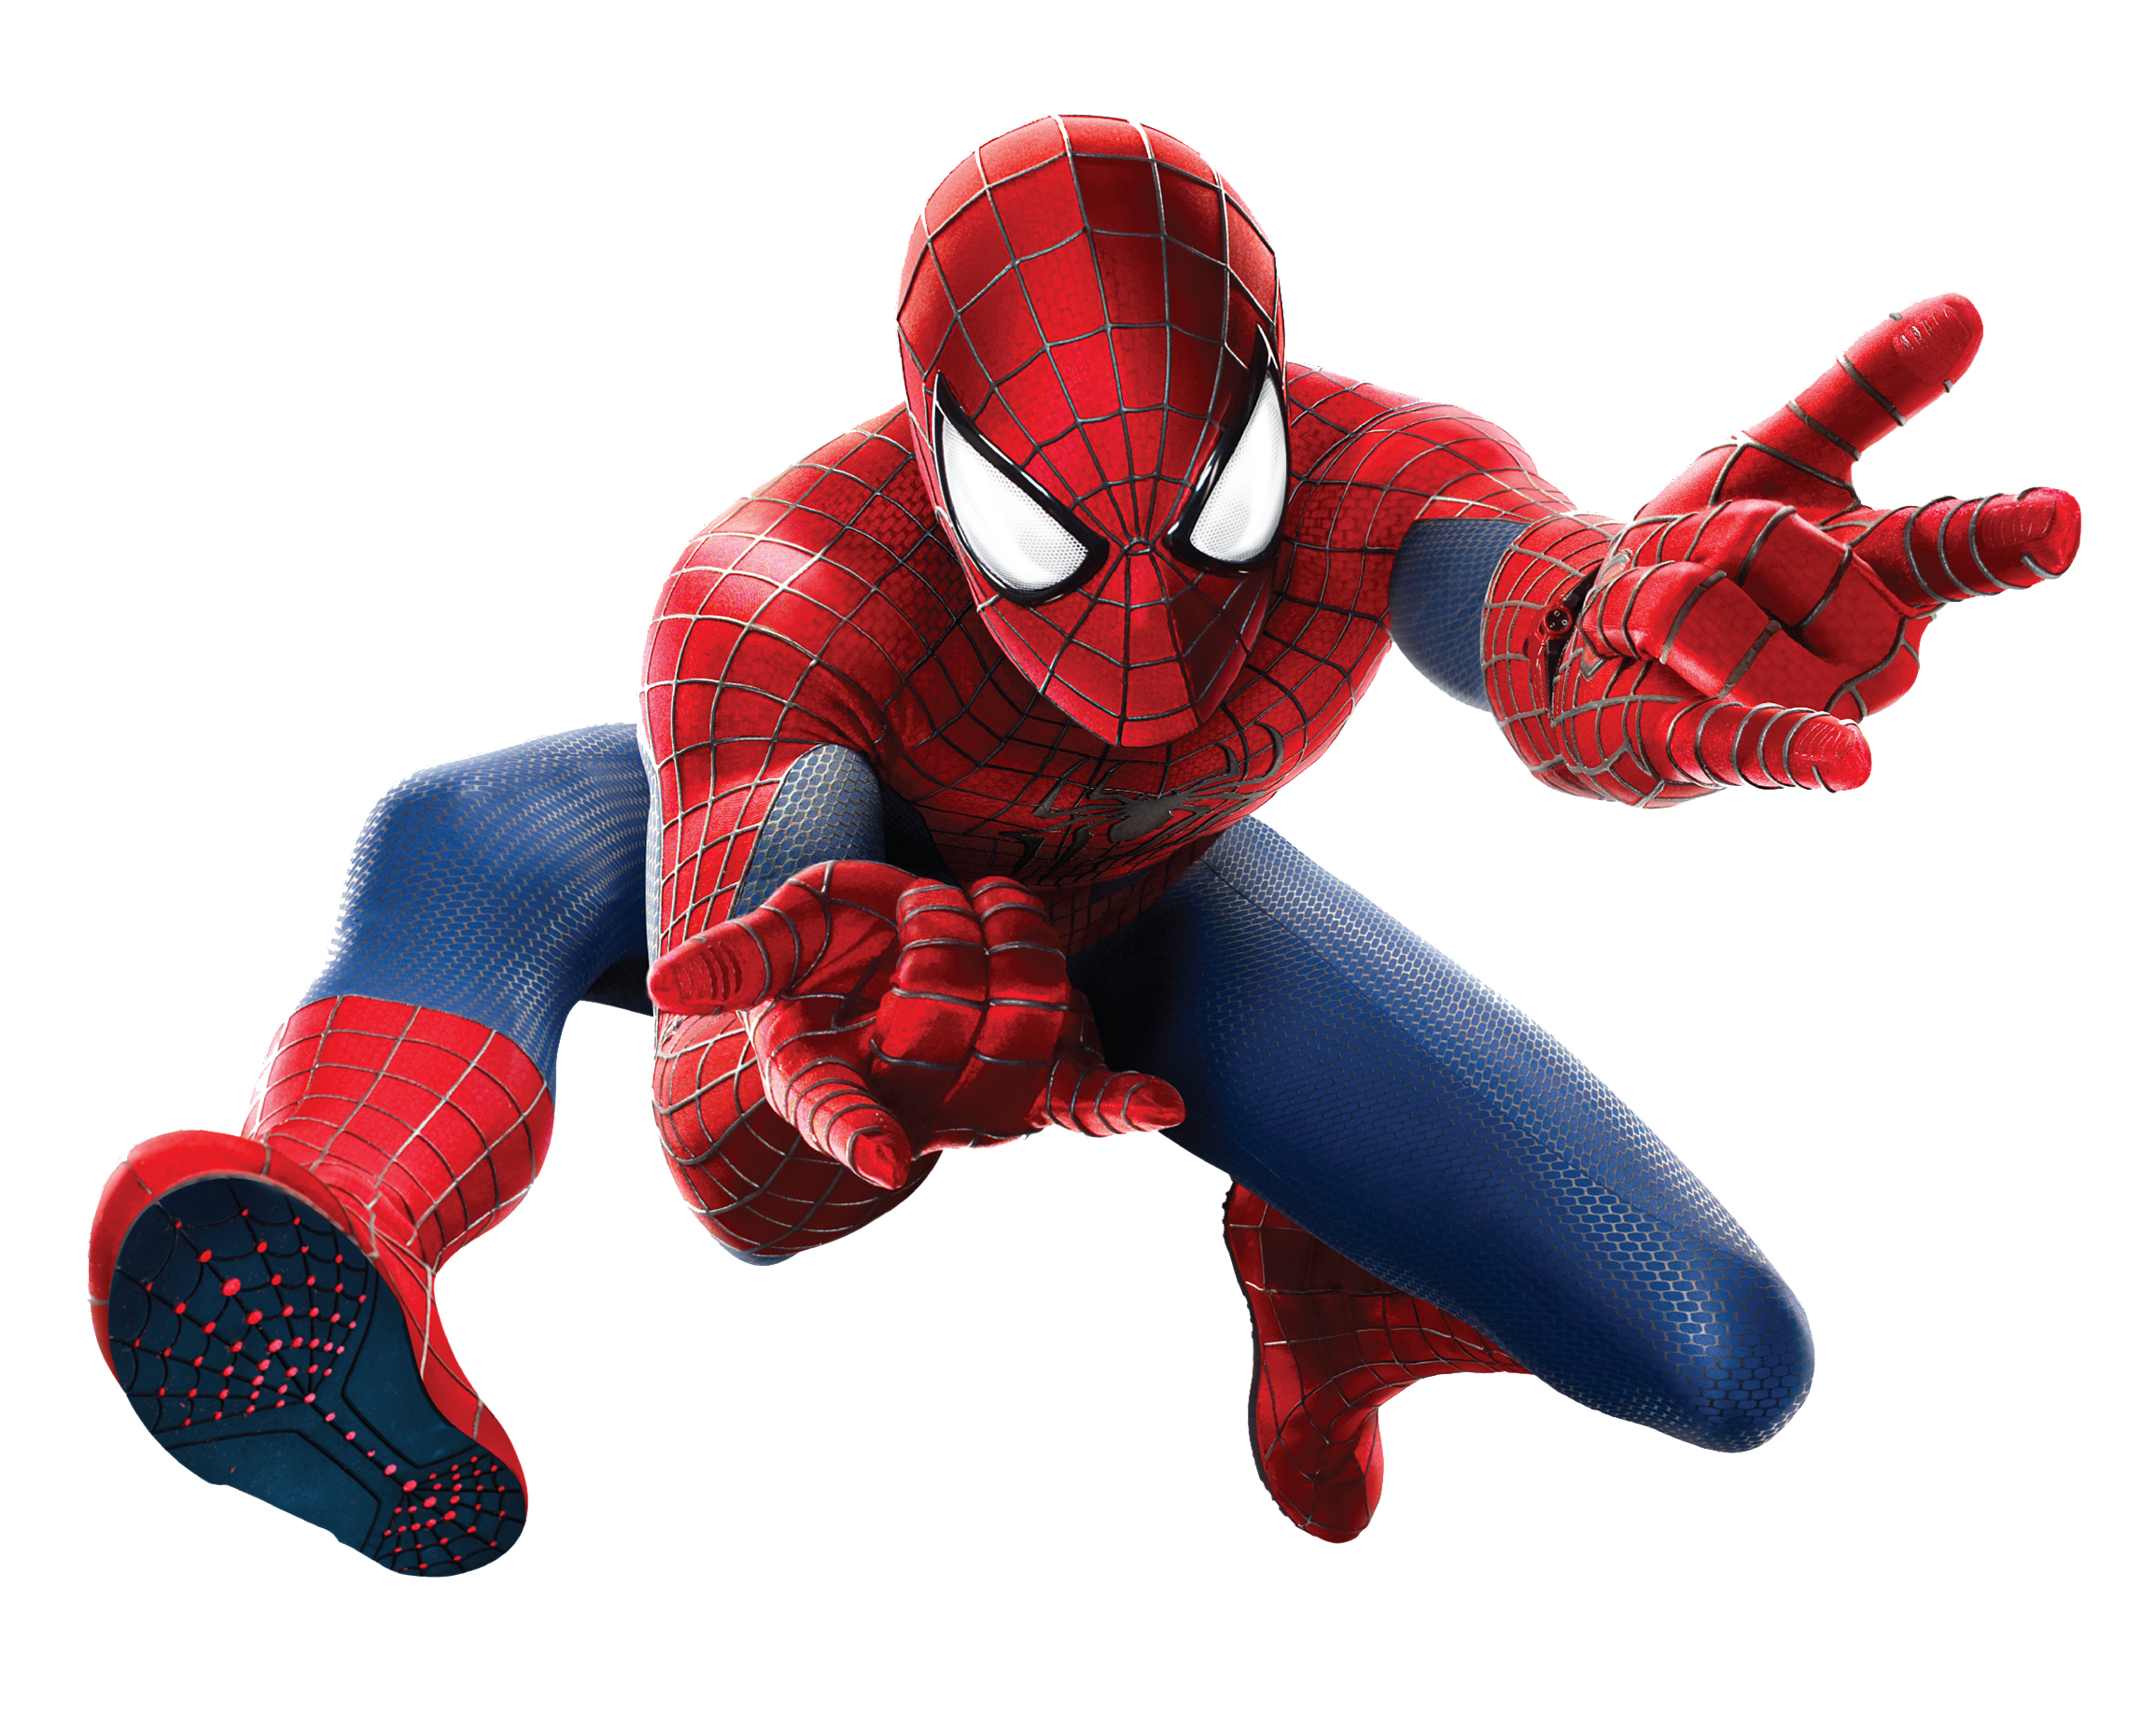 Spider man webs png. Collection of cool backgrounds